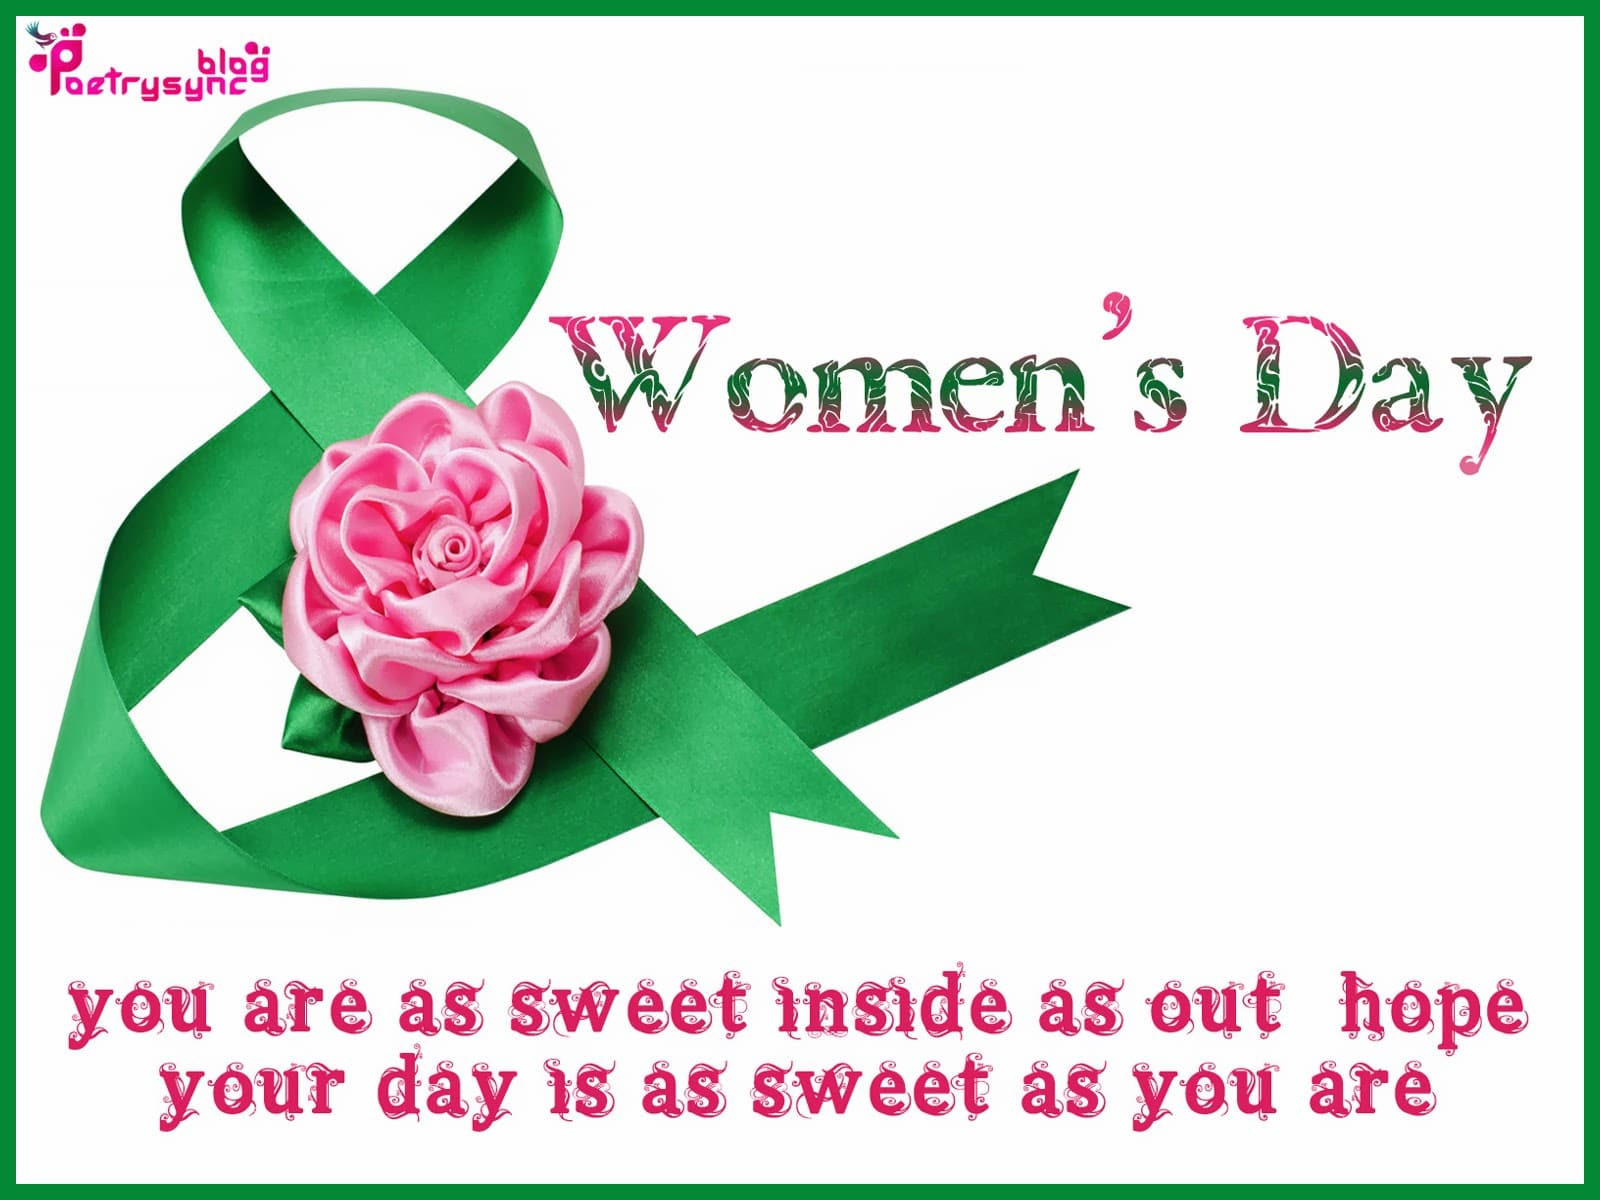 HD Images and Wallpaper of Women's Day Wishes